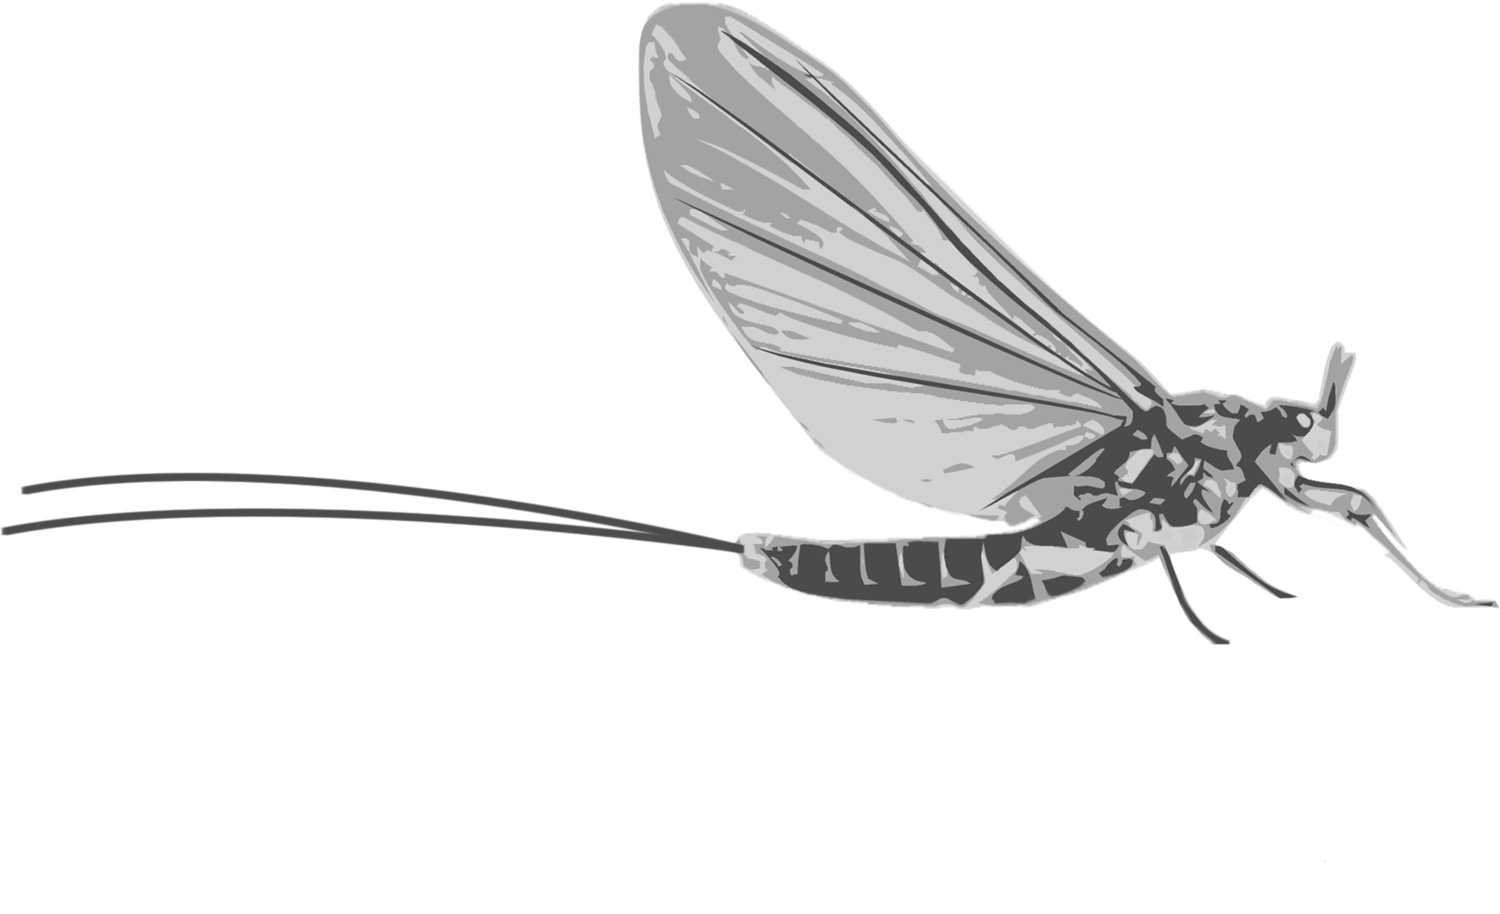 West Branch Angler Resort